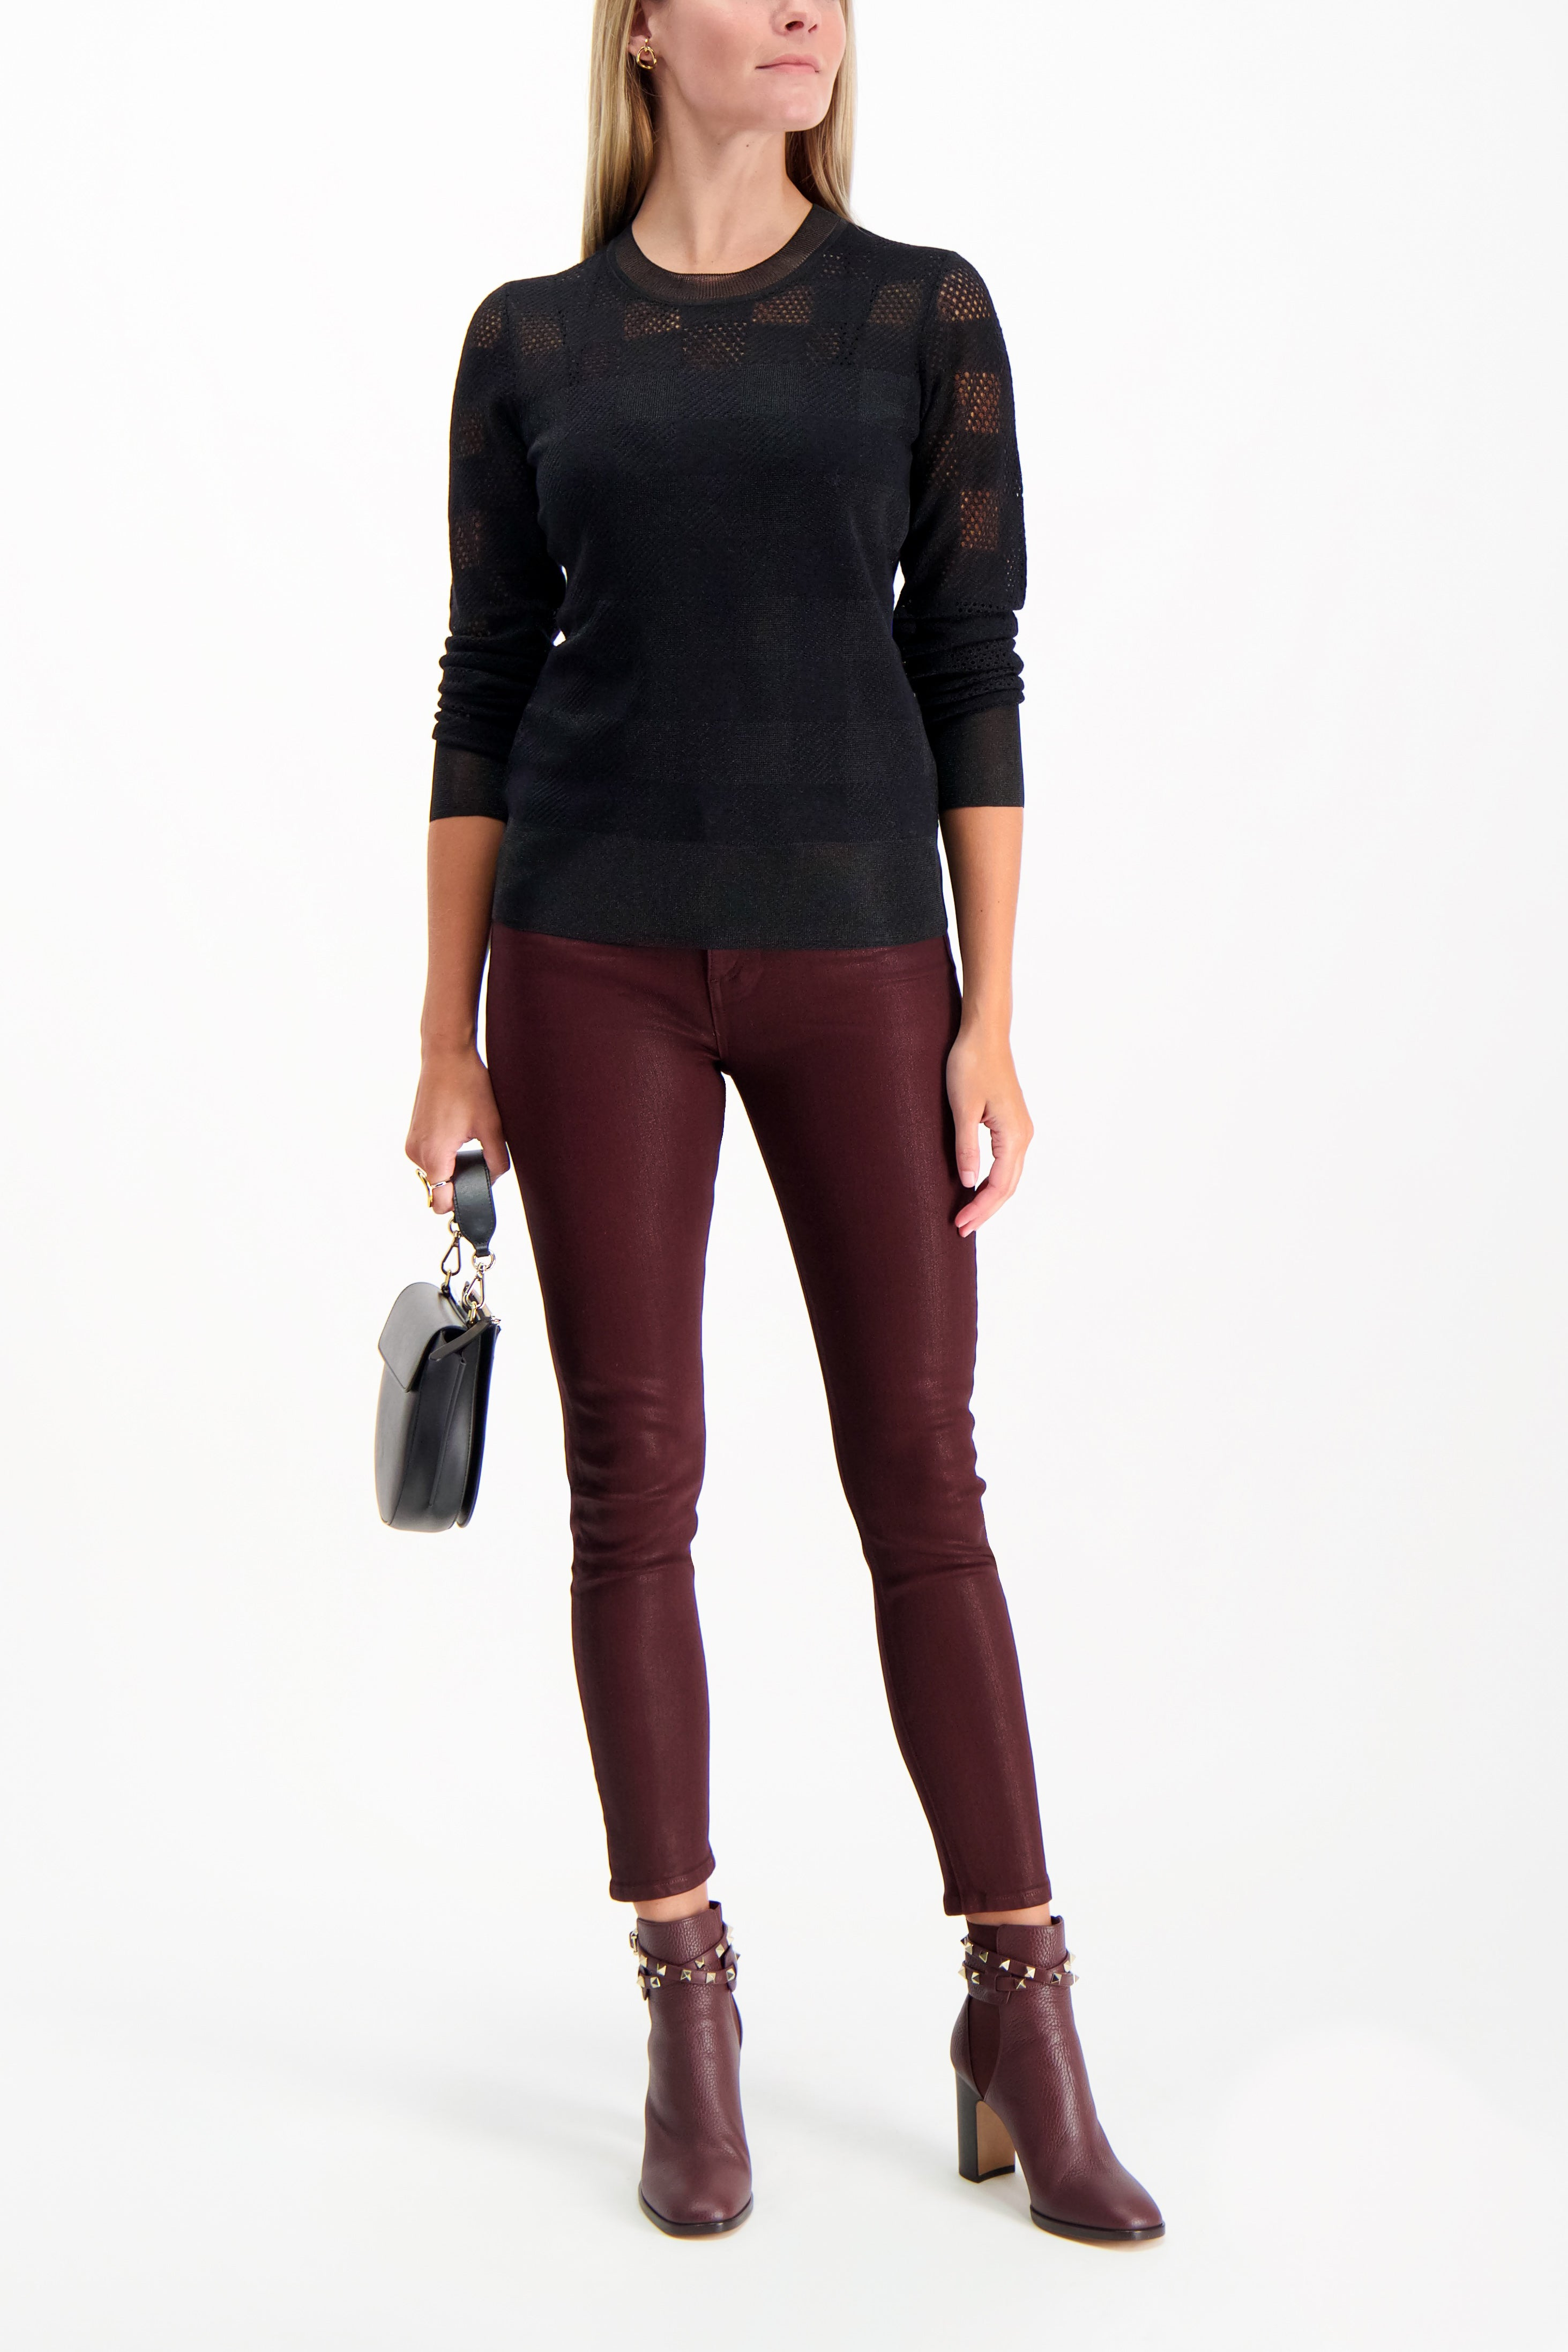 Full Body Image Of Model Wearing Rag & Bone Nina High Rise Ankle Skinny